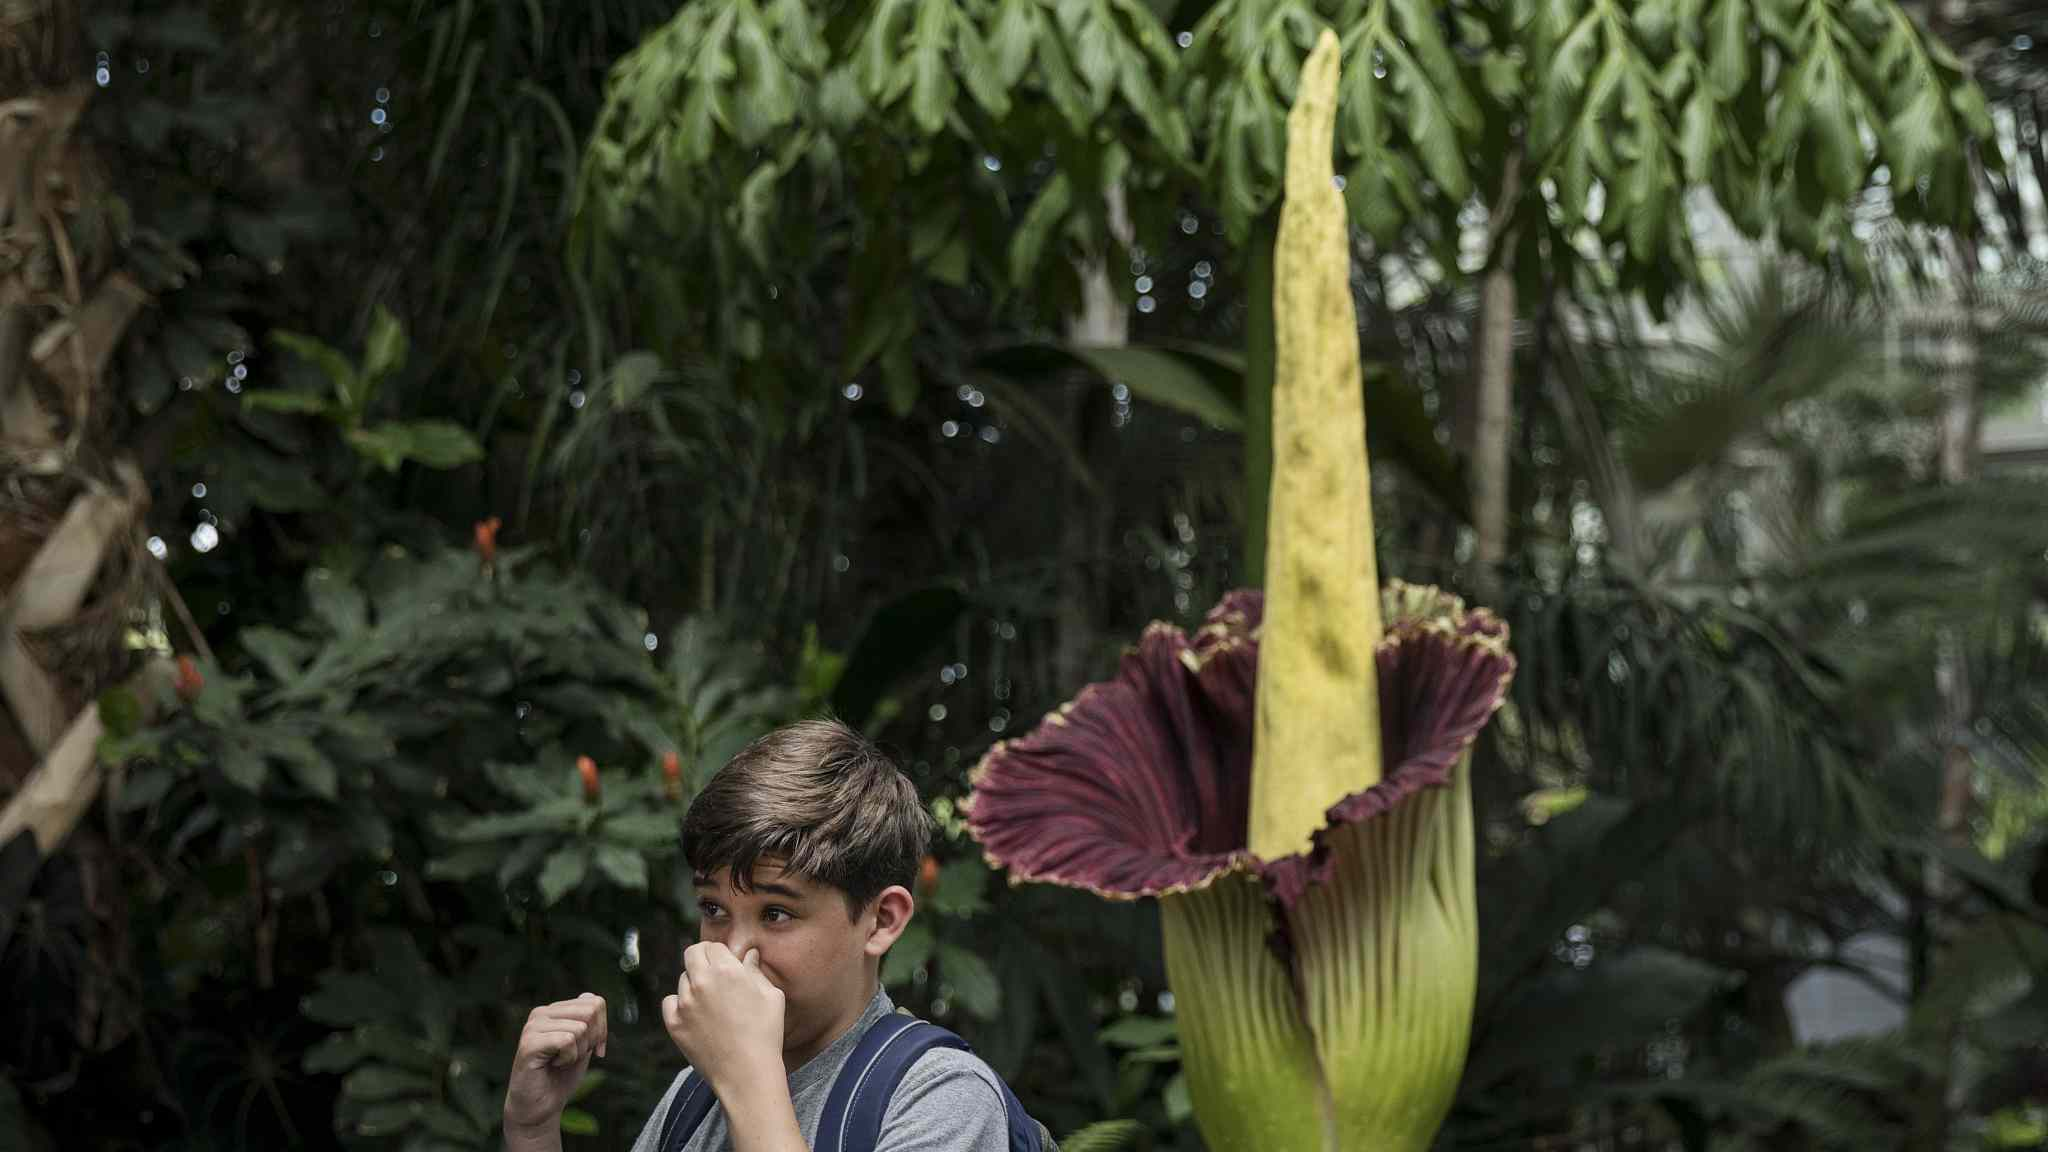 Corpse flower's stench stuns visitors at the New York Botanical Garden